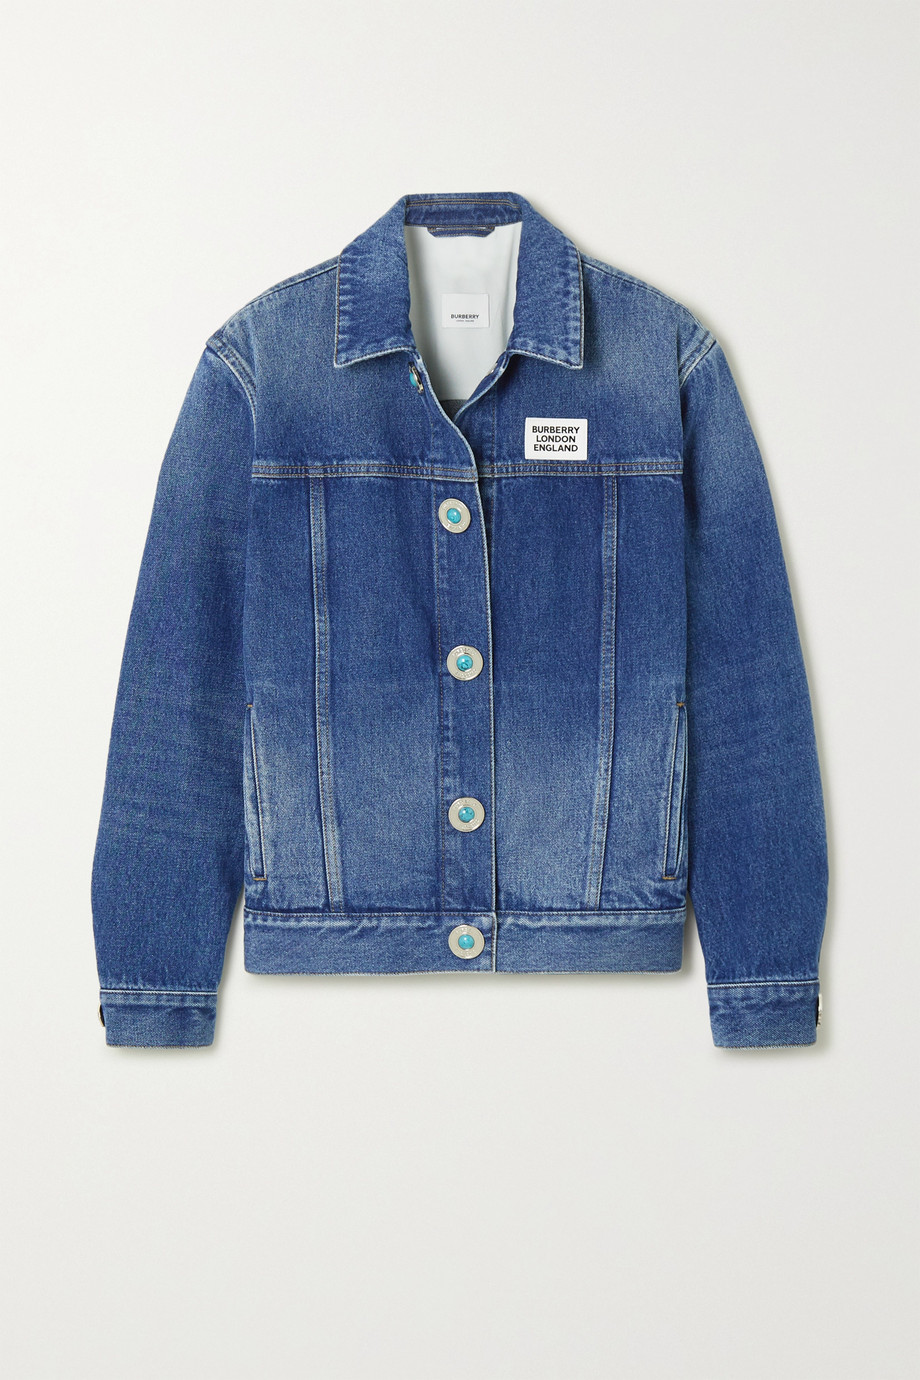 Burberry Appliquéd bead-embellished denim jacket